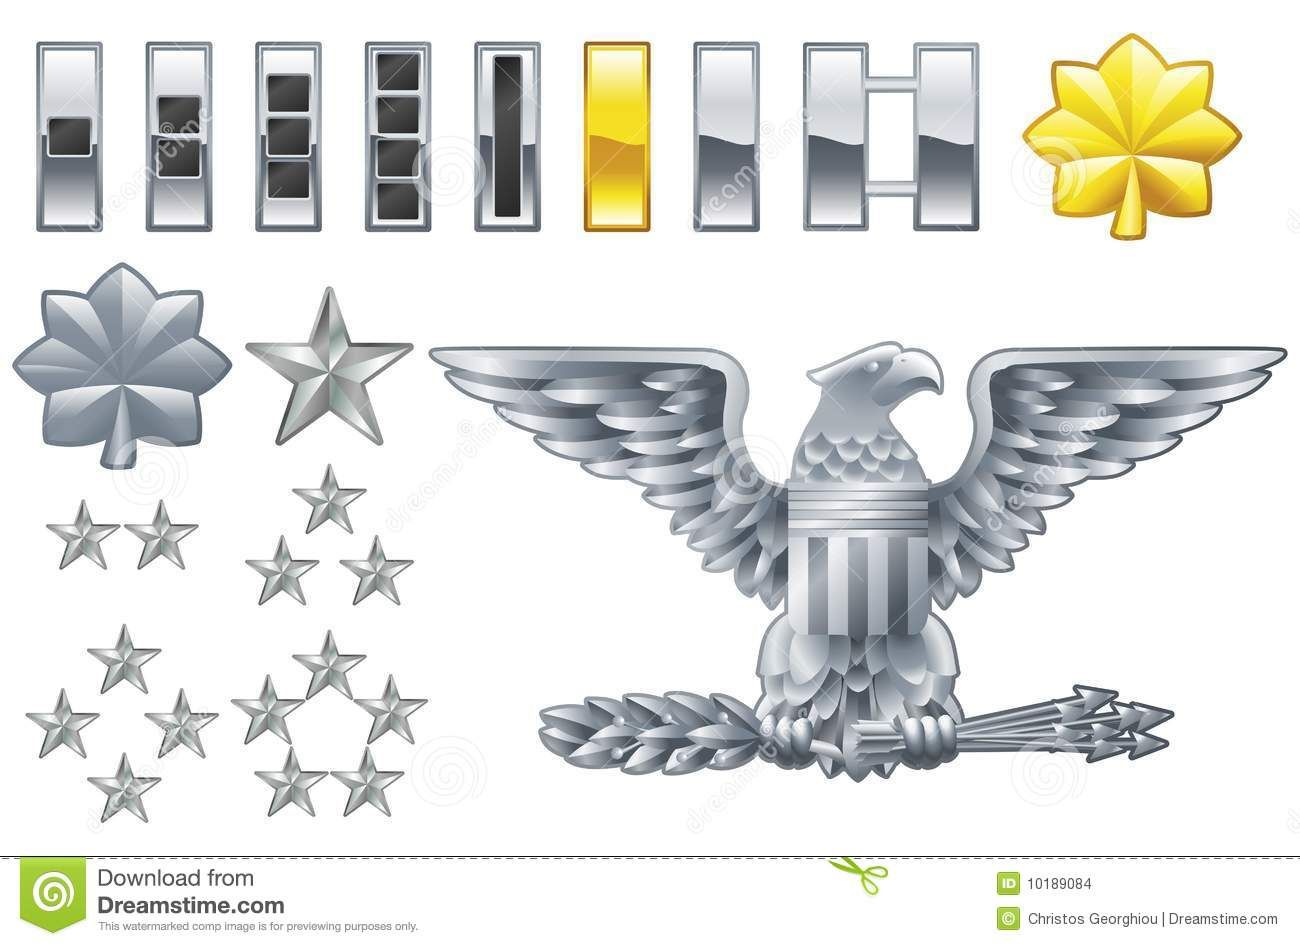 Signs symbols to protect officers and soldiers google search signs symbols to protect officers and soldiers google search biocorpaavc Images